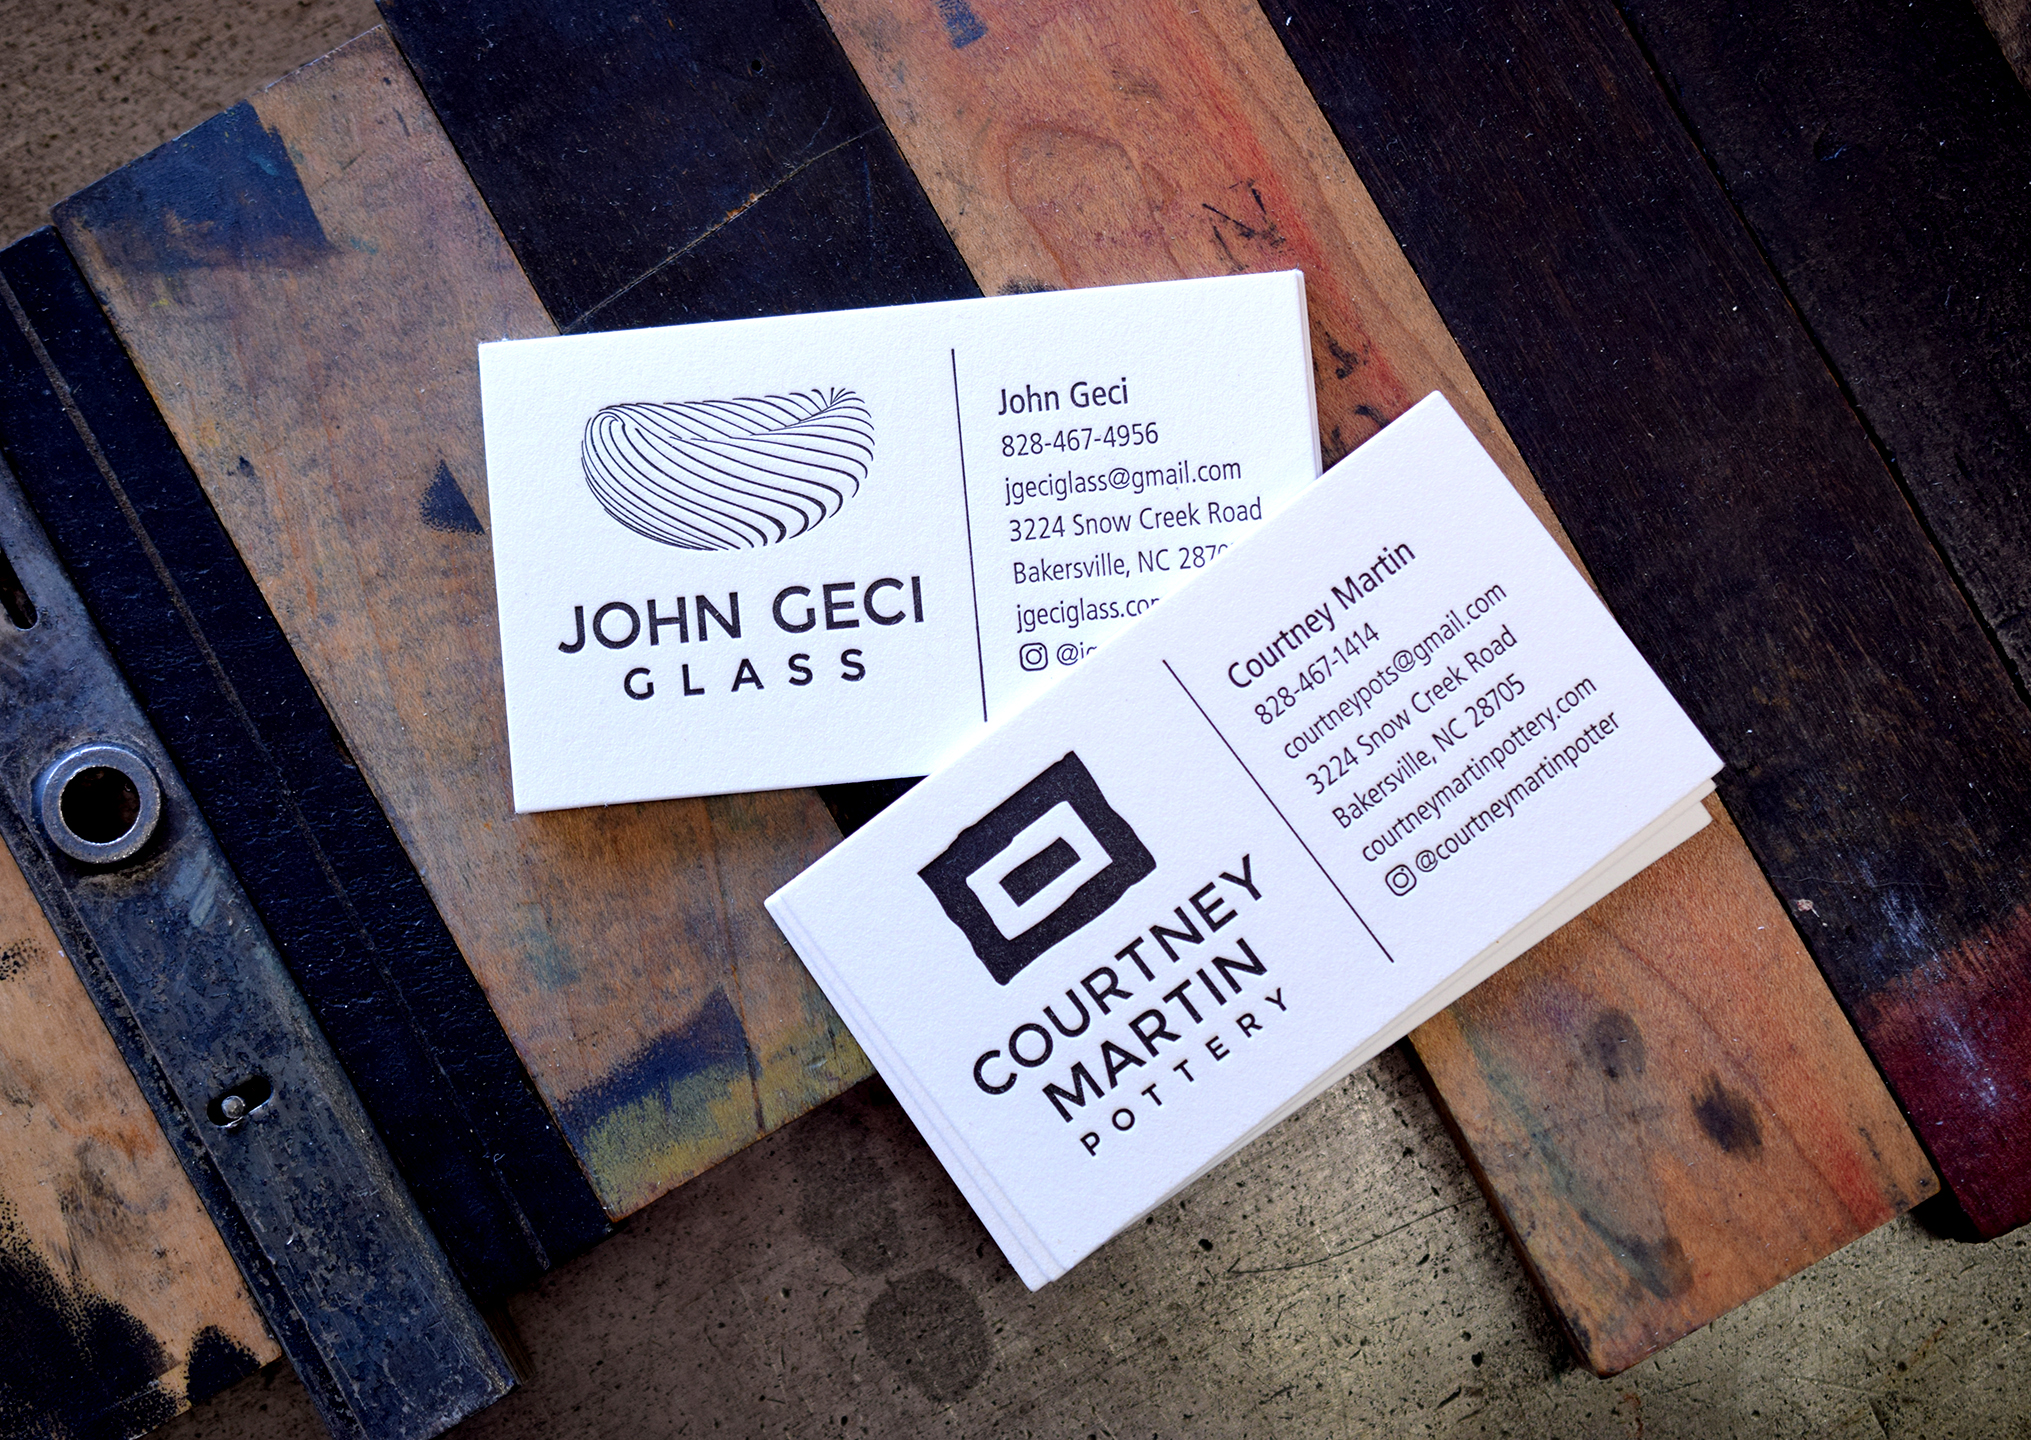 Courtney Martin Pottery & John Geci Glass Business Cards : Letterpress Printed : Design by ODDS and 7 Ton Co.